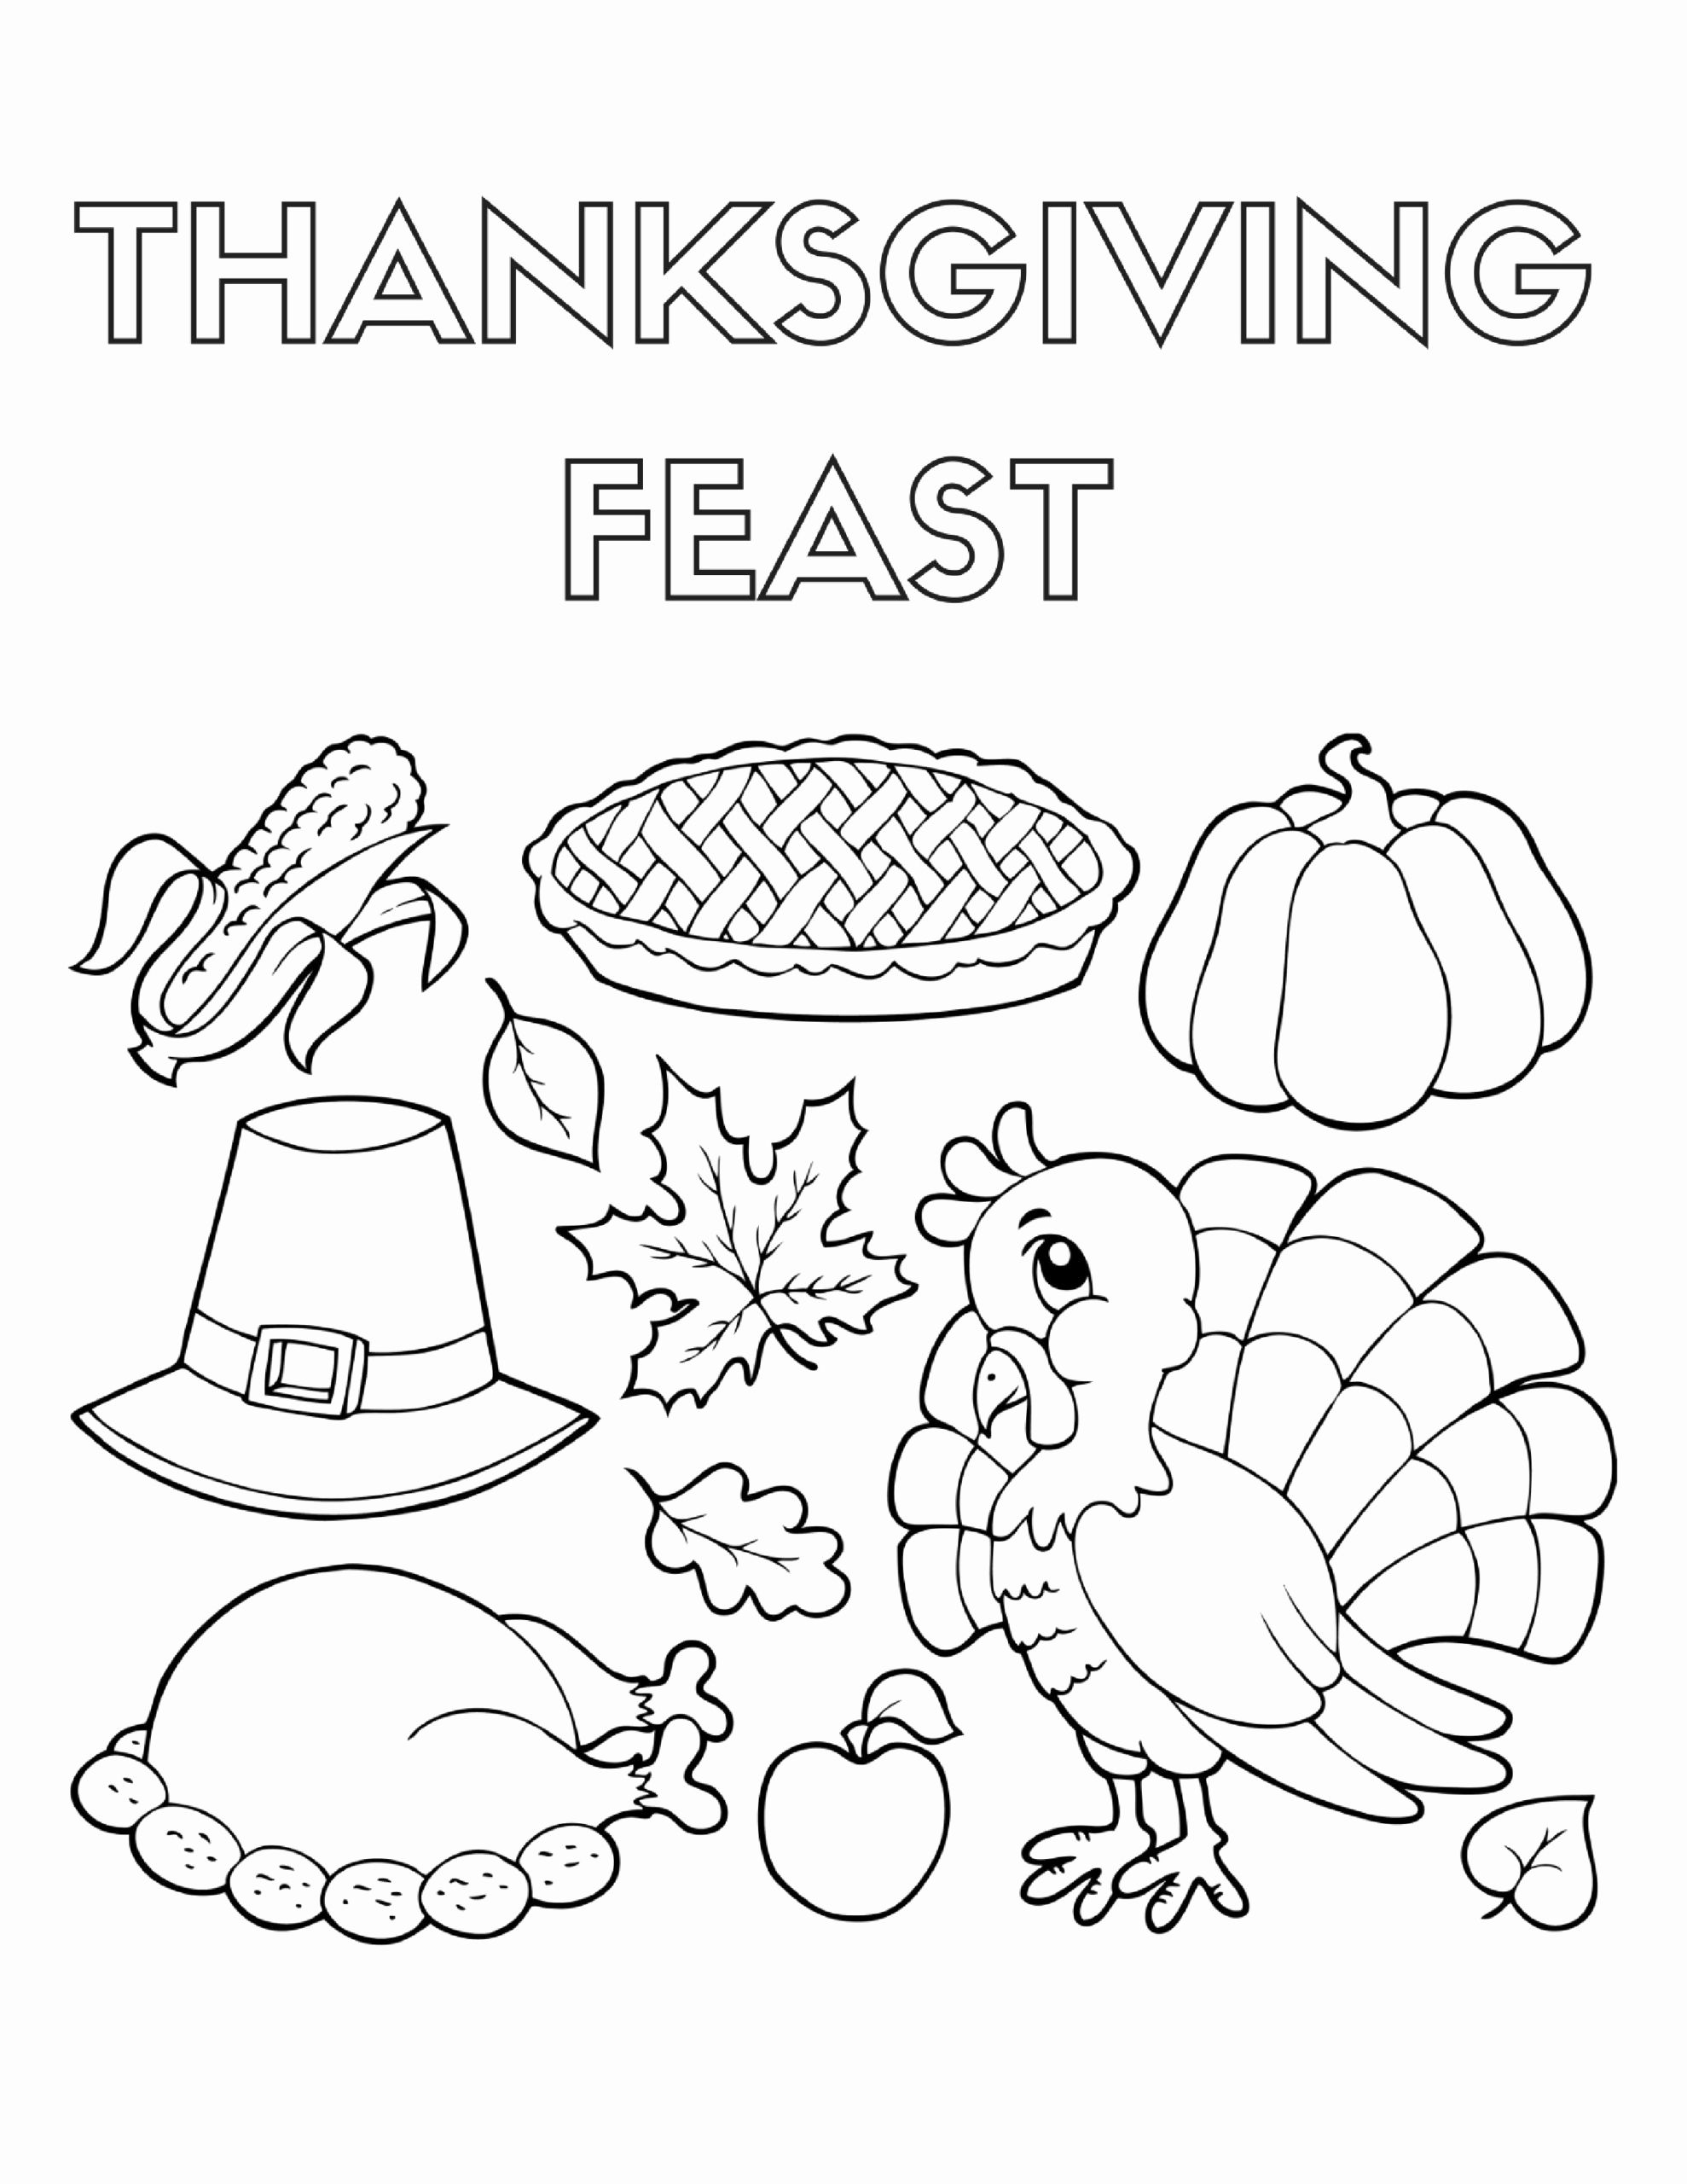 Thanksgiving Food Coloring Pages Kids Thanksgiving Coloring Pages Turkey Coloring Pages Food Coloring Pages